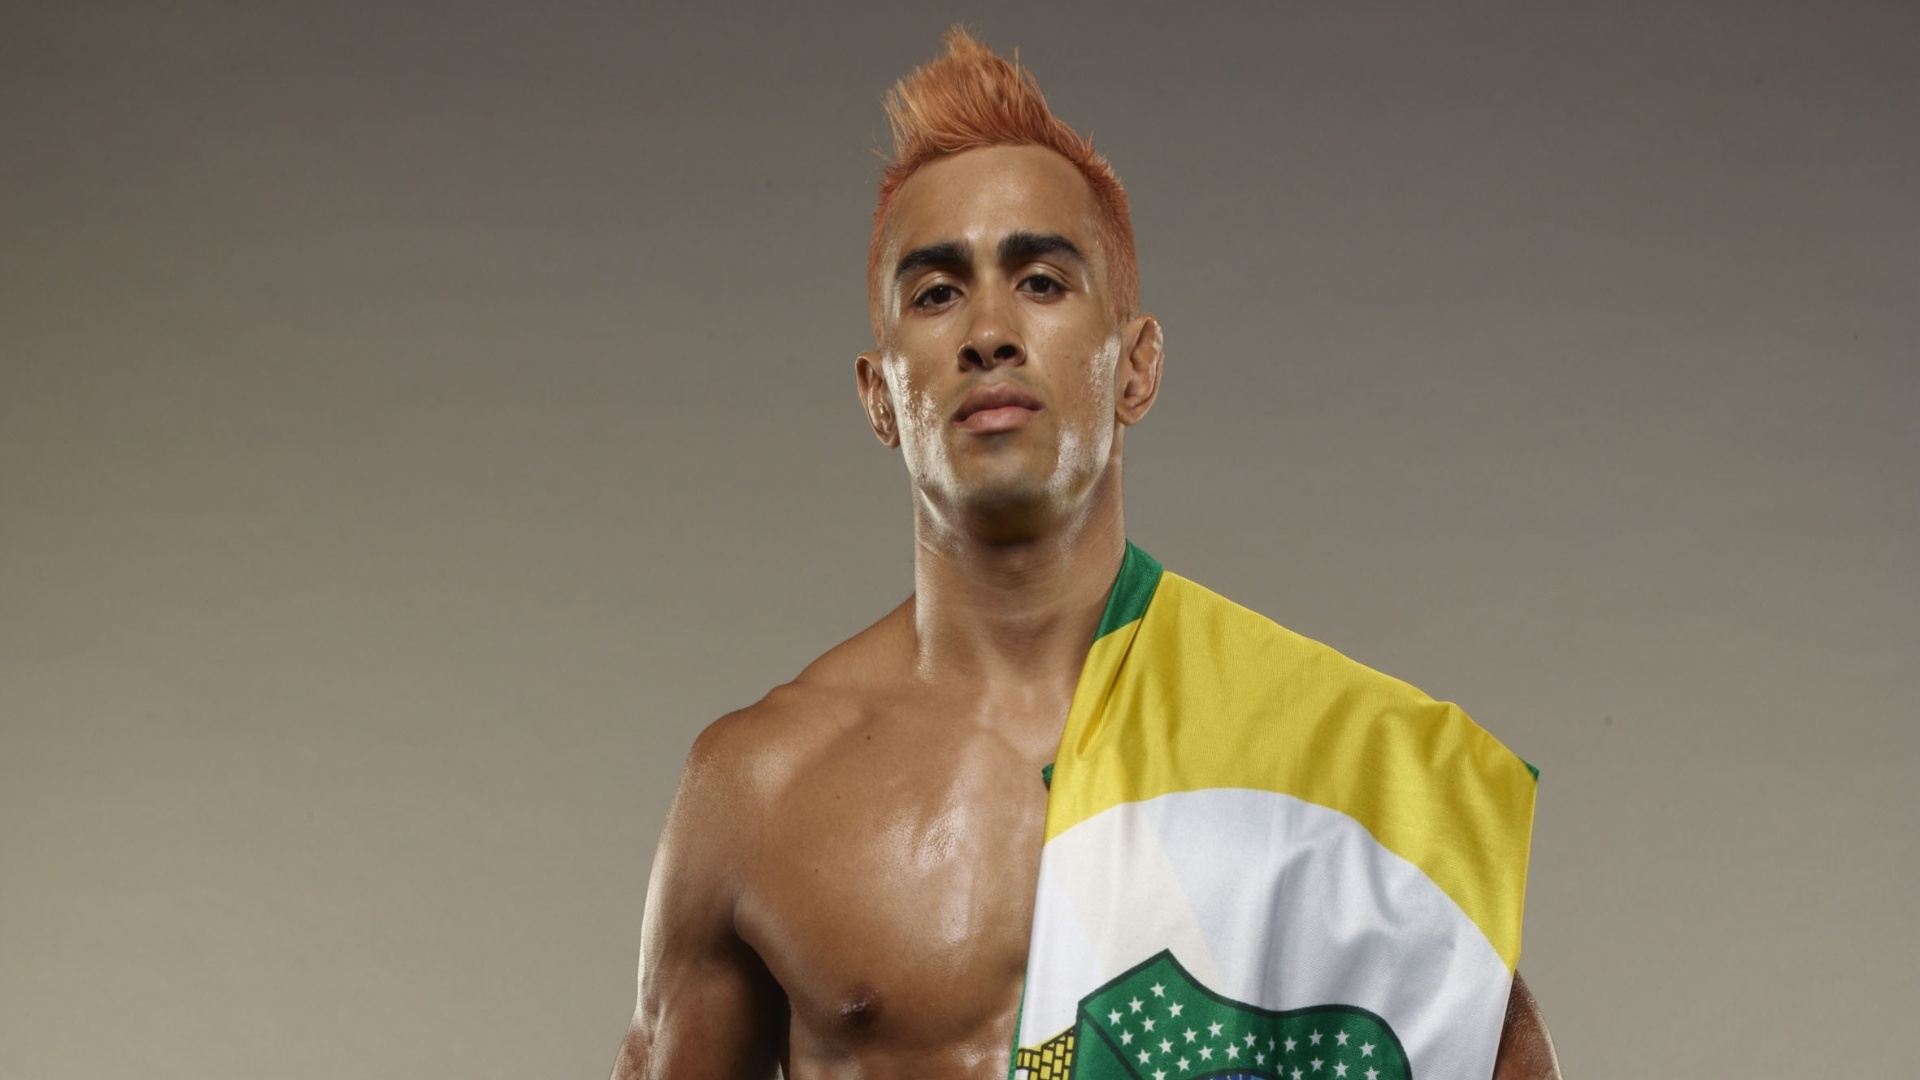 Godofredo Pepey, peso pena do TUF Brasil